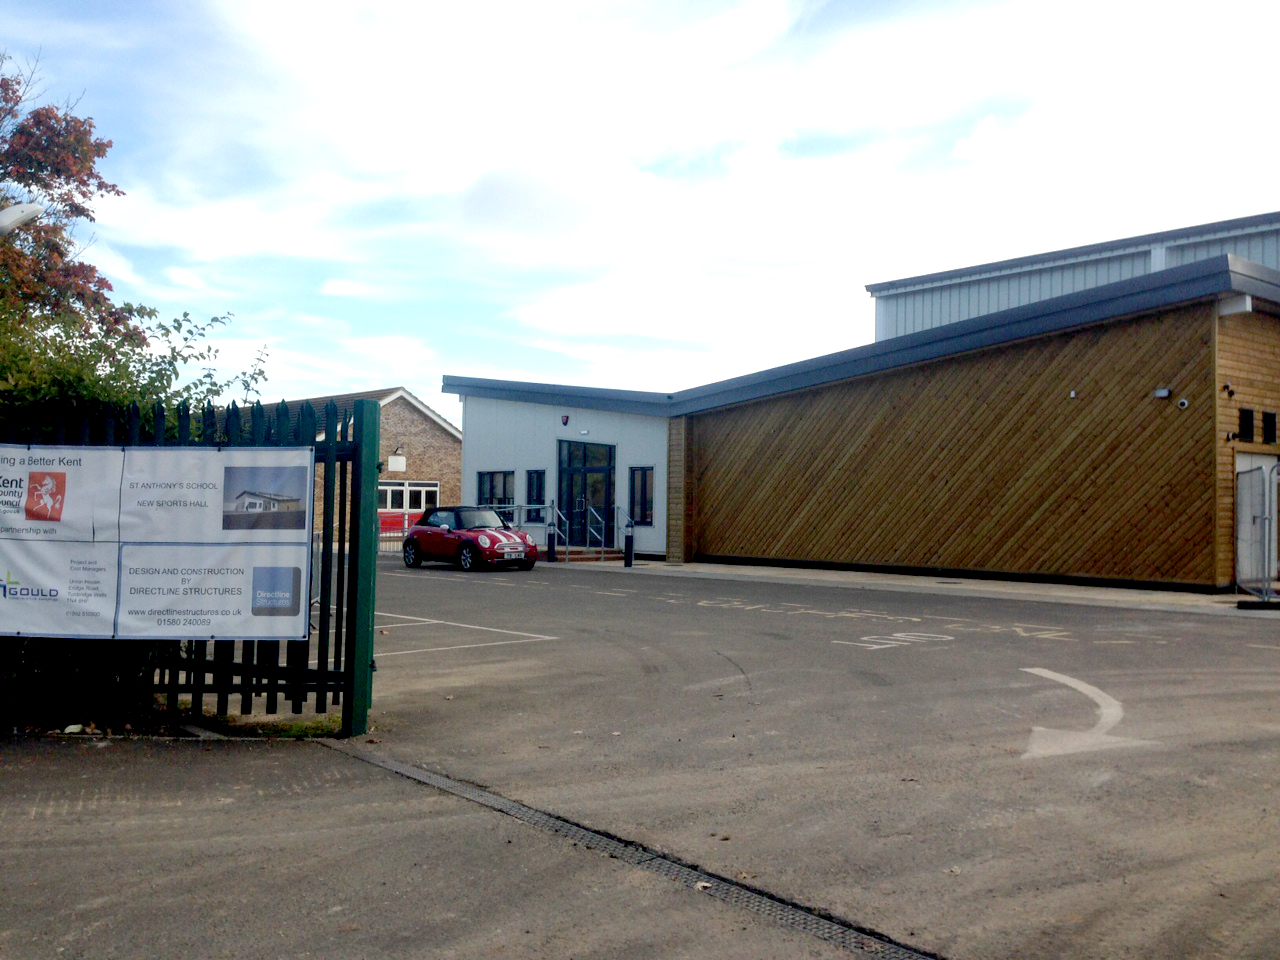 St Anthony's School, sports hall kent, Directline Structures